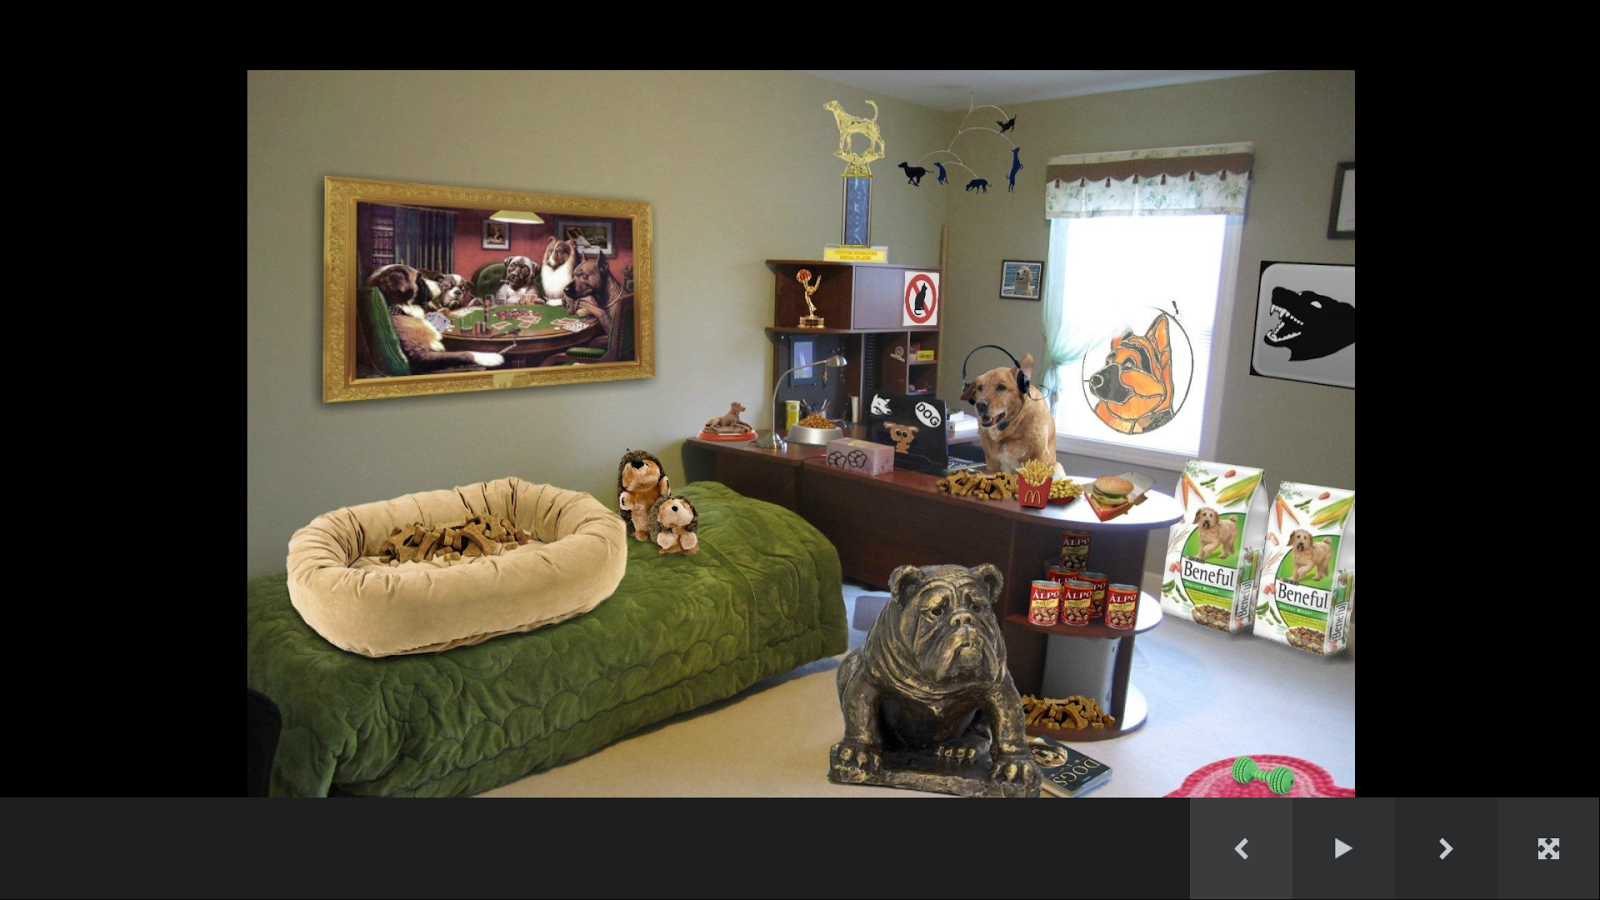 Dog Room Decor - Android Apps on Google Play